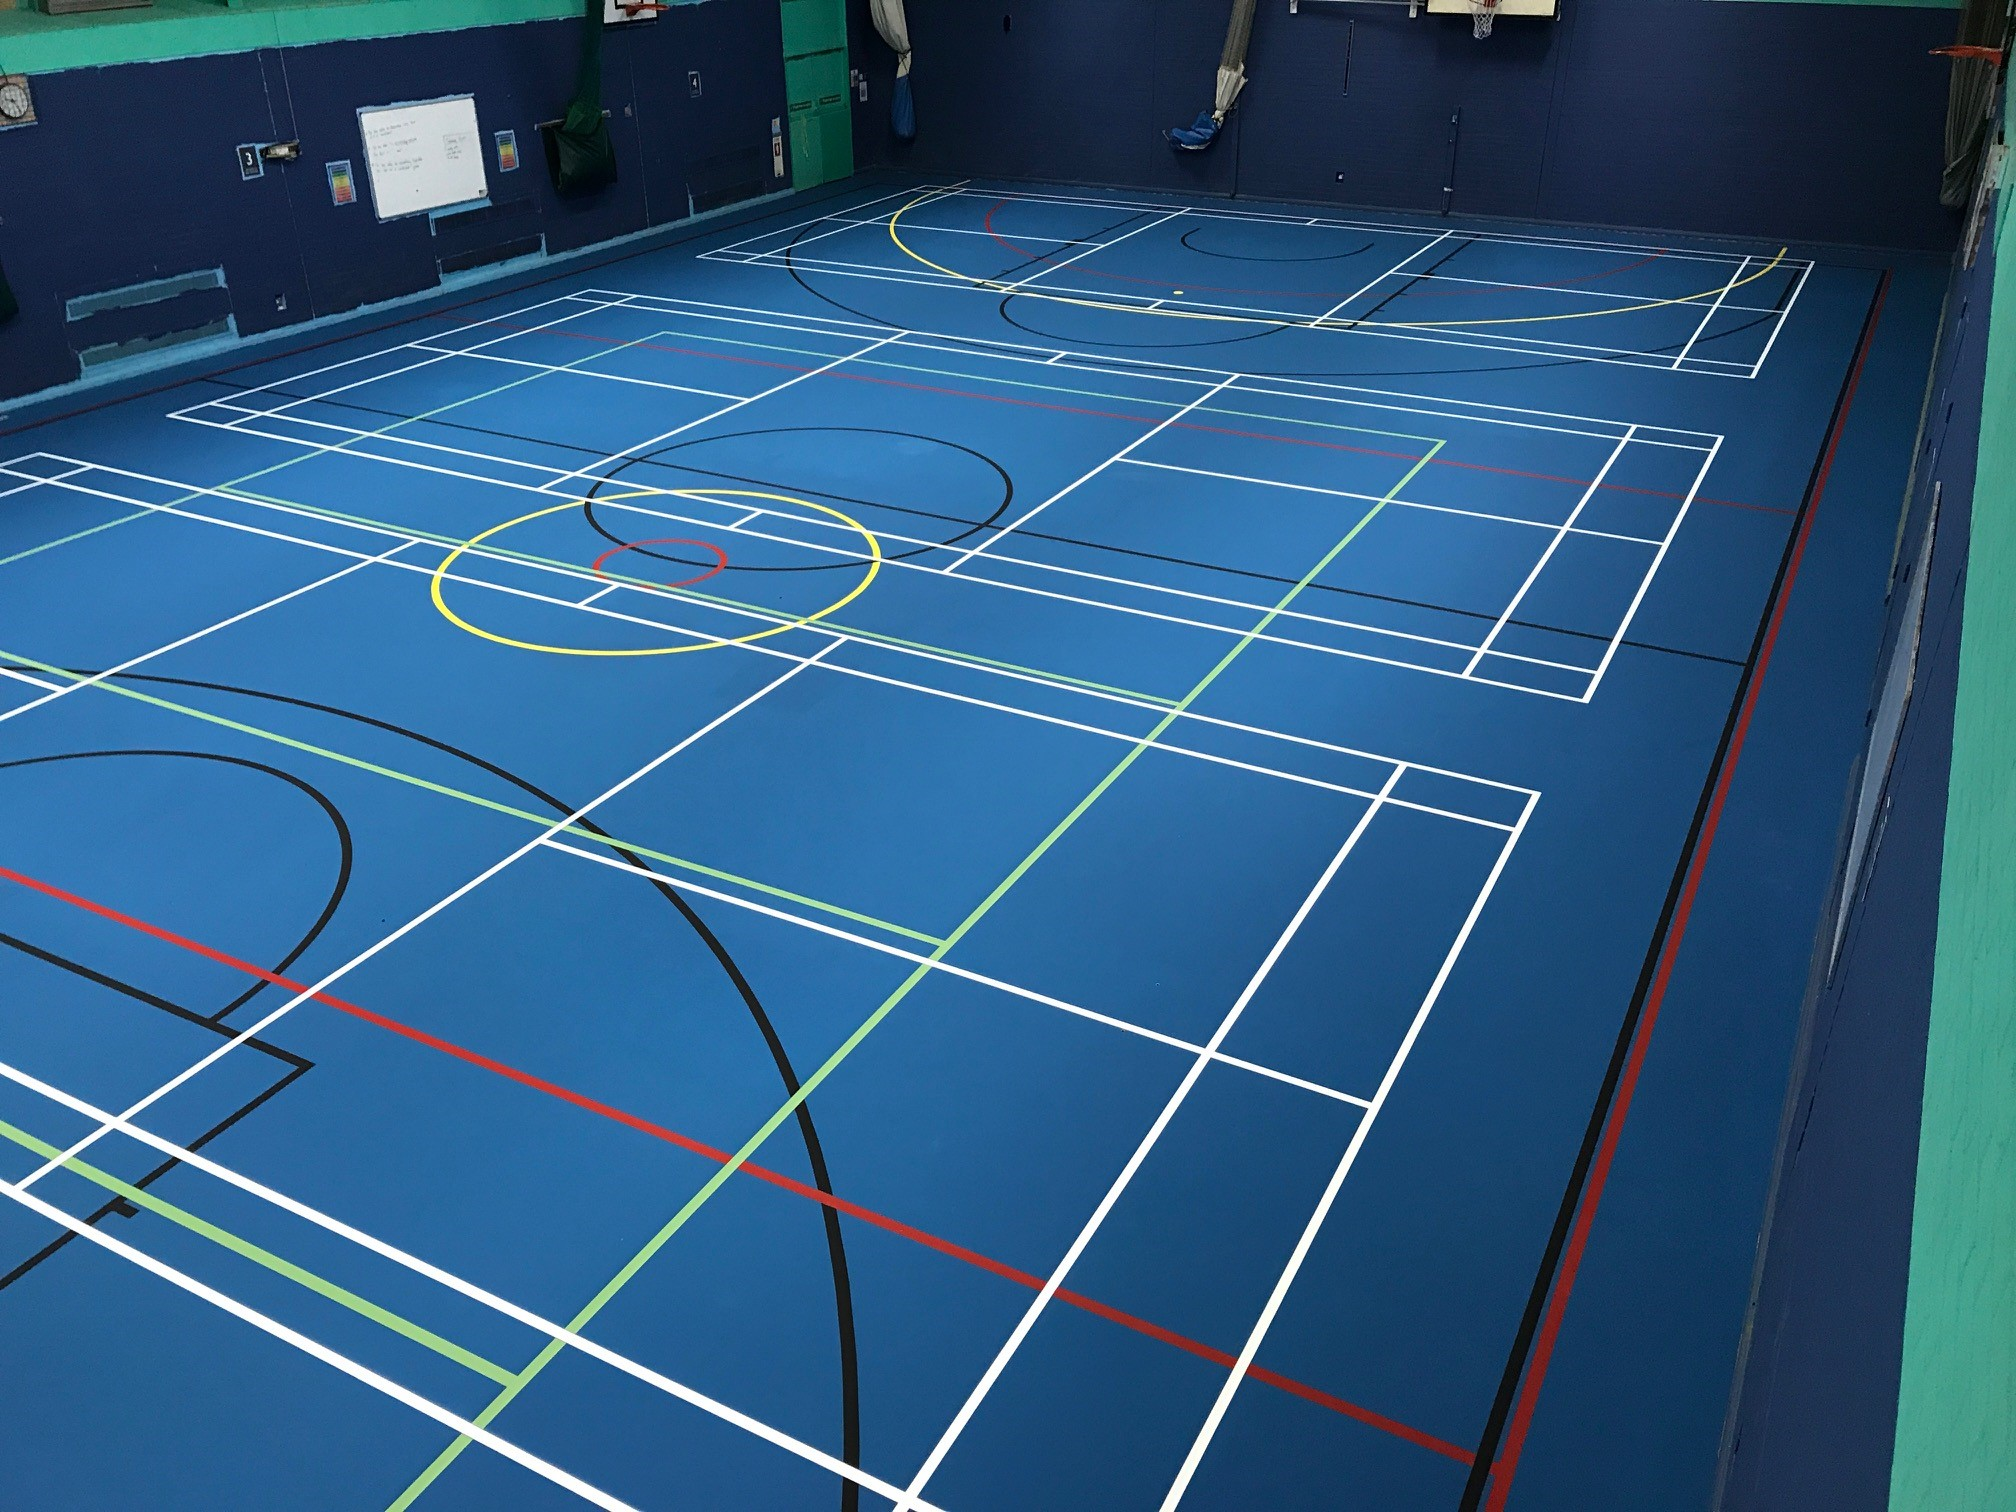 Blue Pulastic sports hall floor installed by Sports Surface UK with court markings